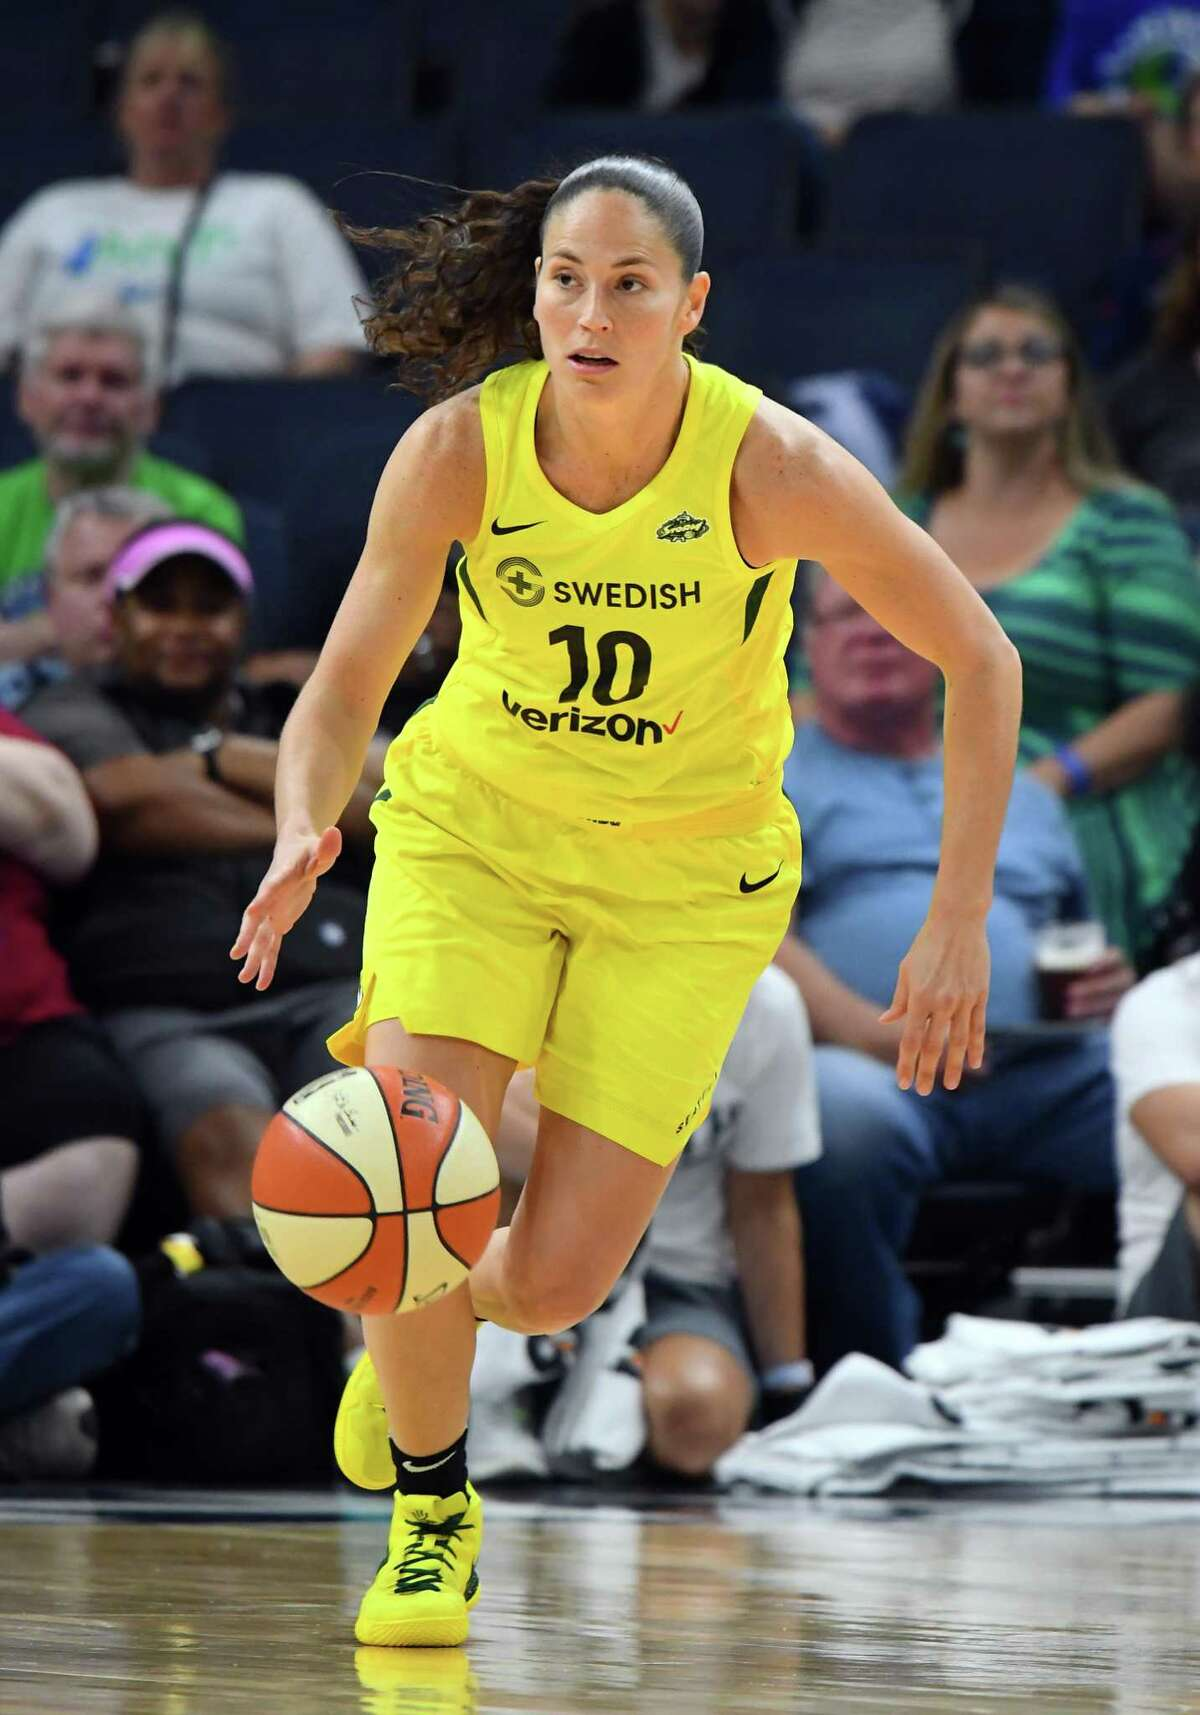 MINNEAPOLIS, MN - JUNE 26: Seattle Storm Guard Sue Bird (10) carries the ball up court during a WNBA game between the Minnesota Lynx and Seattle Storm on June 26, 2018 at Target Center in Minneapolis, MN. The Lynx defeated the Storm 91-79.(Photo by Nick Wosika/Icon Sportswire via Getty Images)